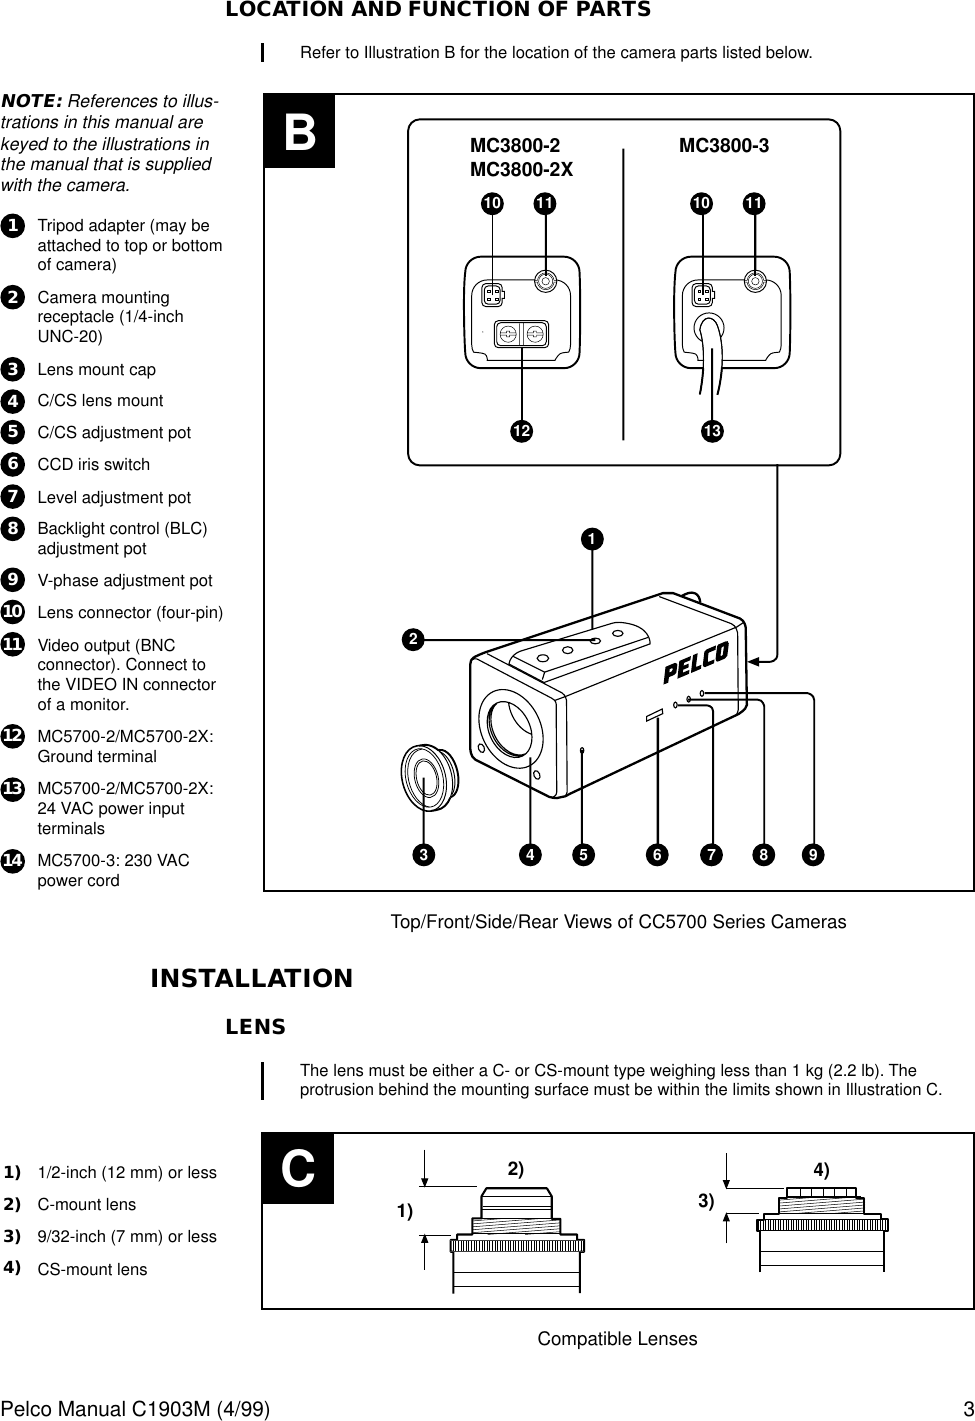 Beautiful Ccd Camera Wiring Diagram Contemporary - The Best ...